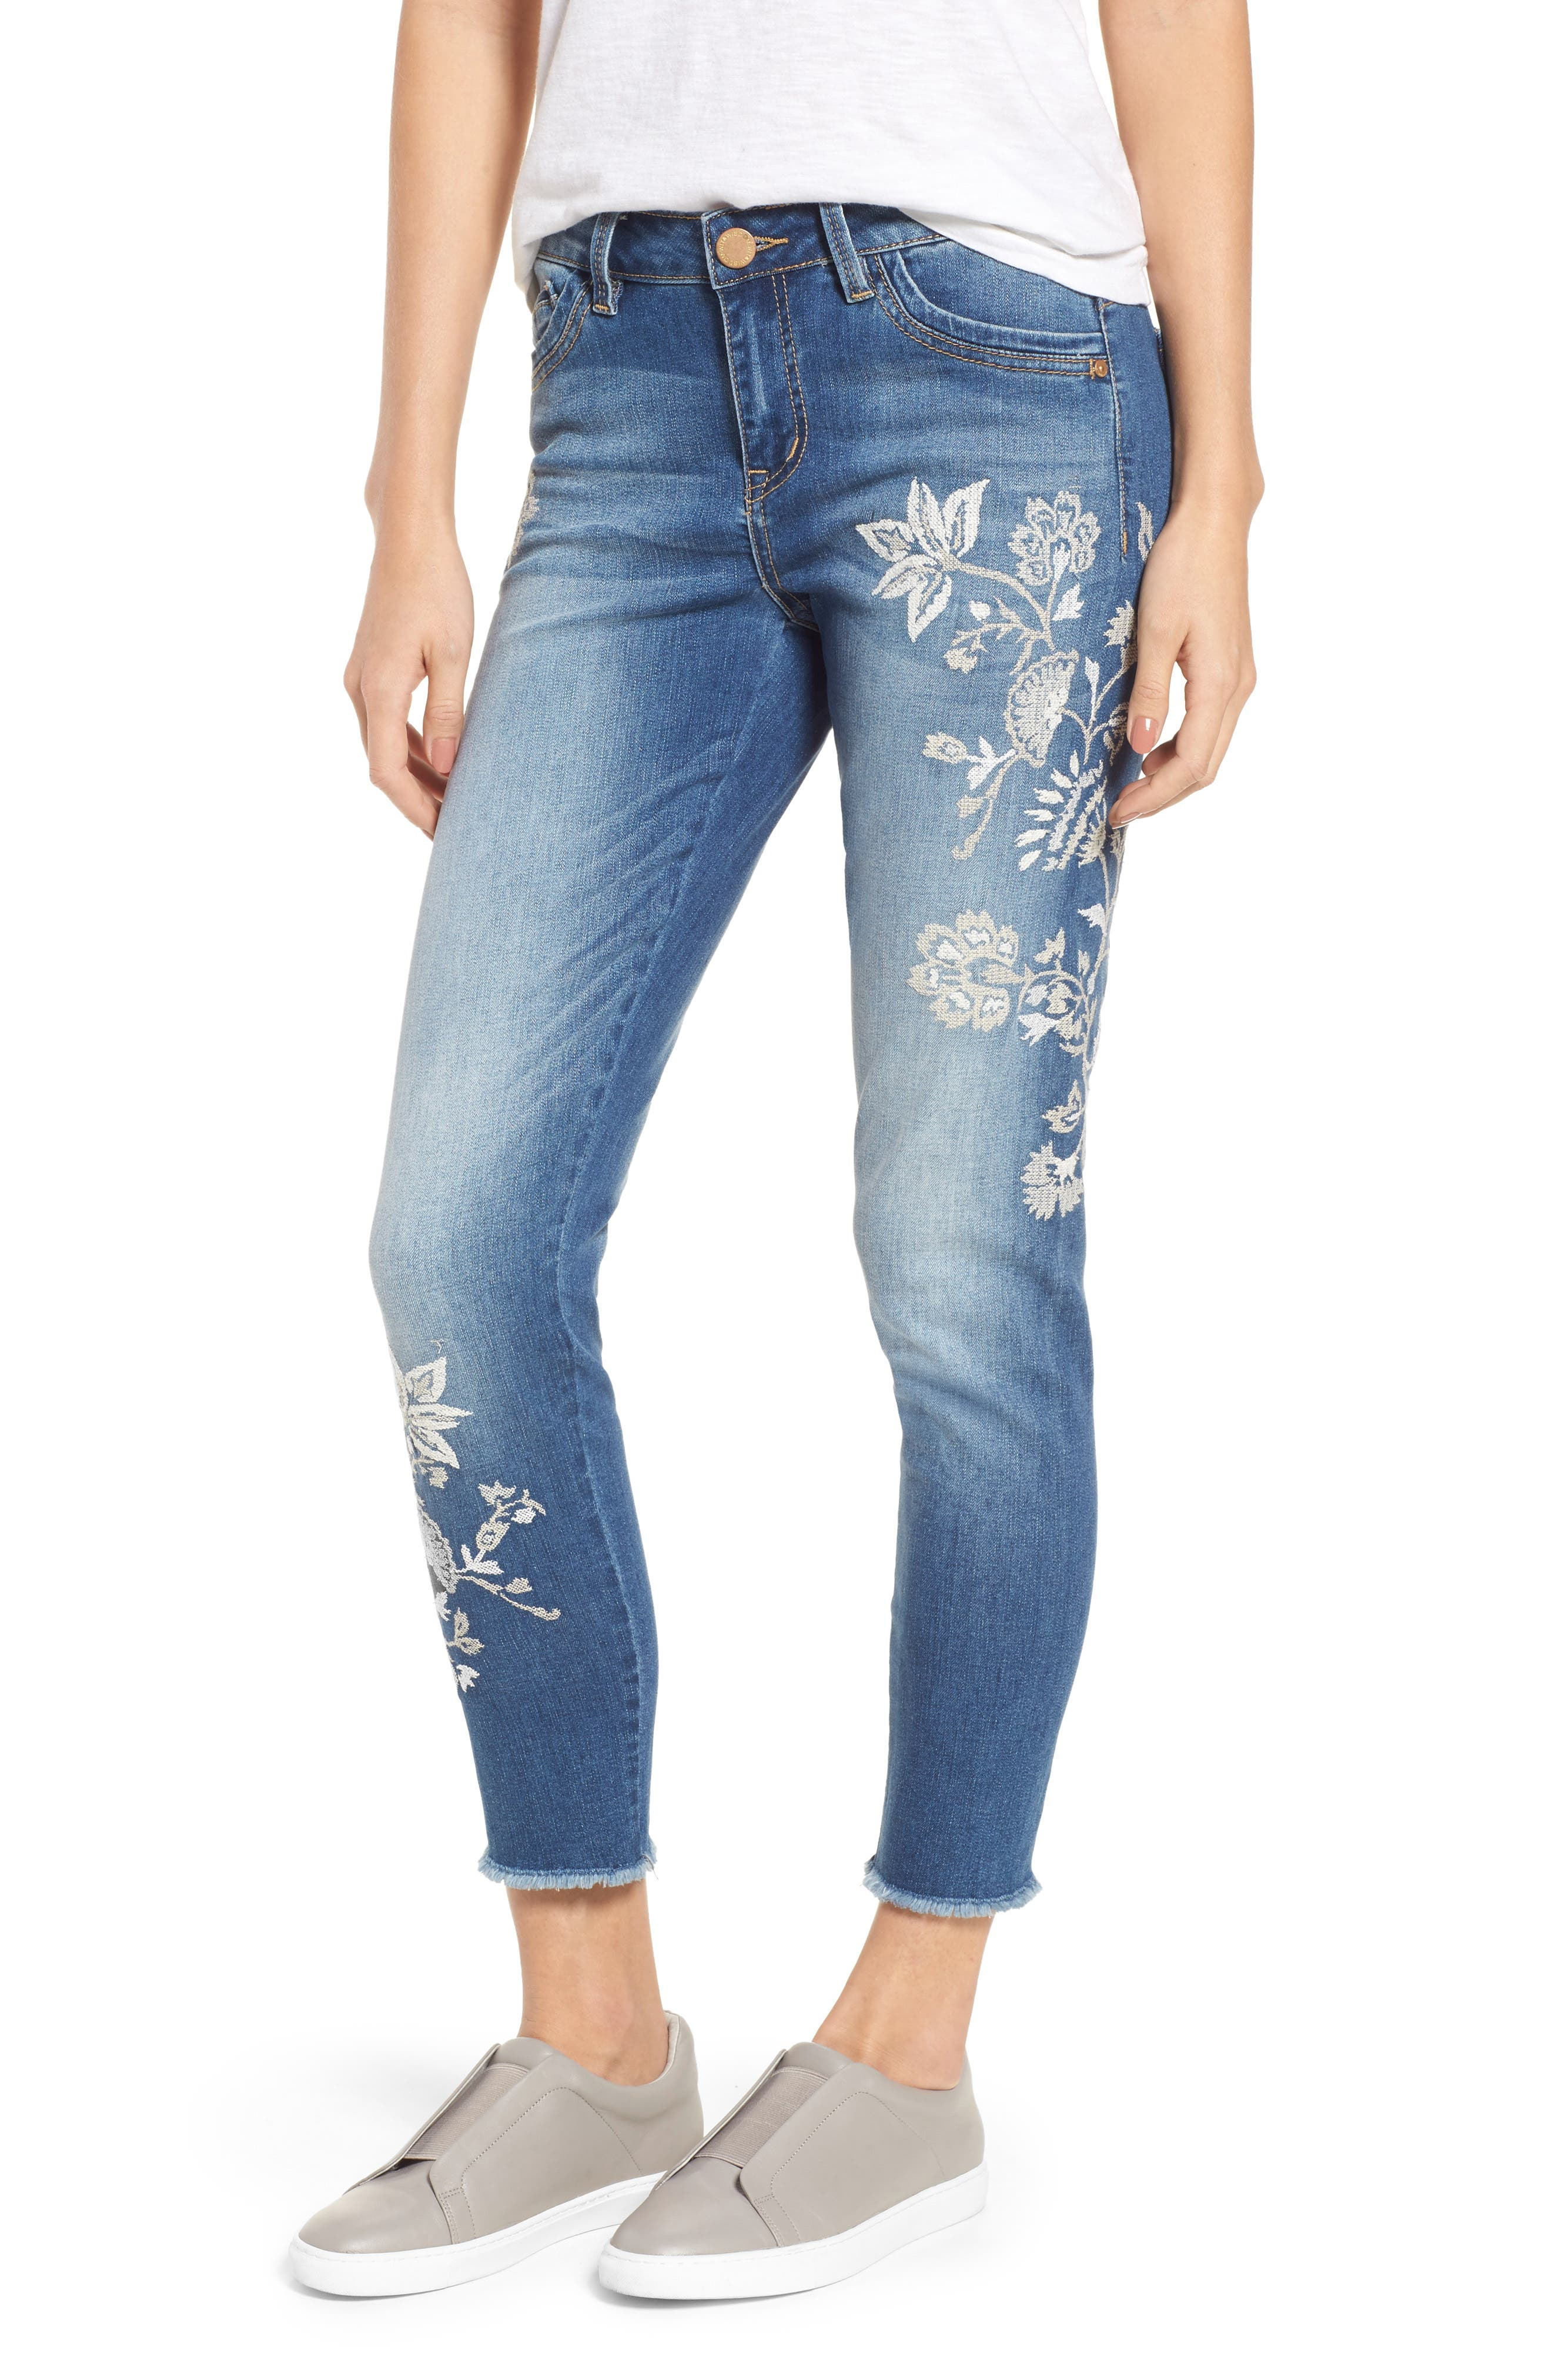 Alternate Image 1 Selected - Wit & Wisdom Embroidered Frayed Hem Ankle Jeans (Nordstrom Exclusive) (Regular & Petite)